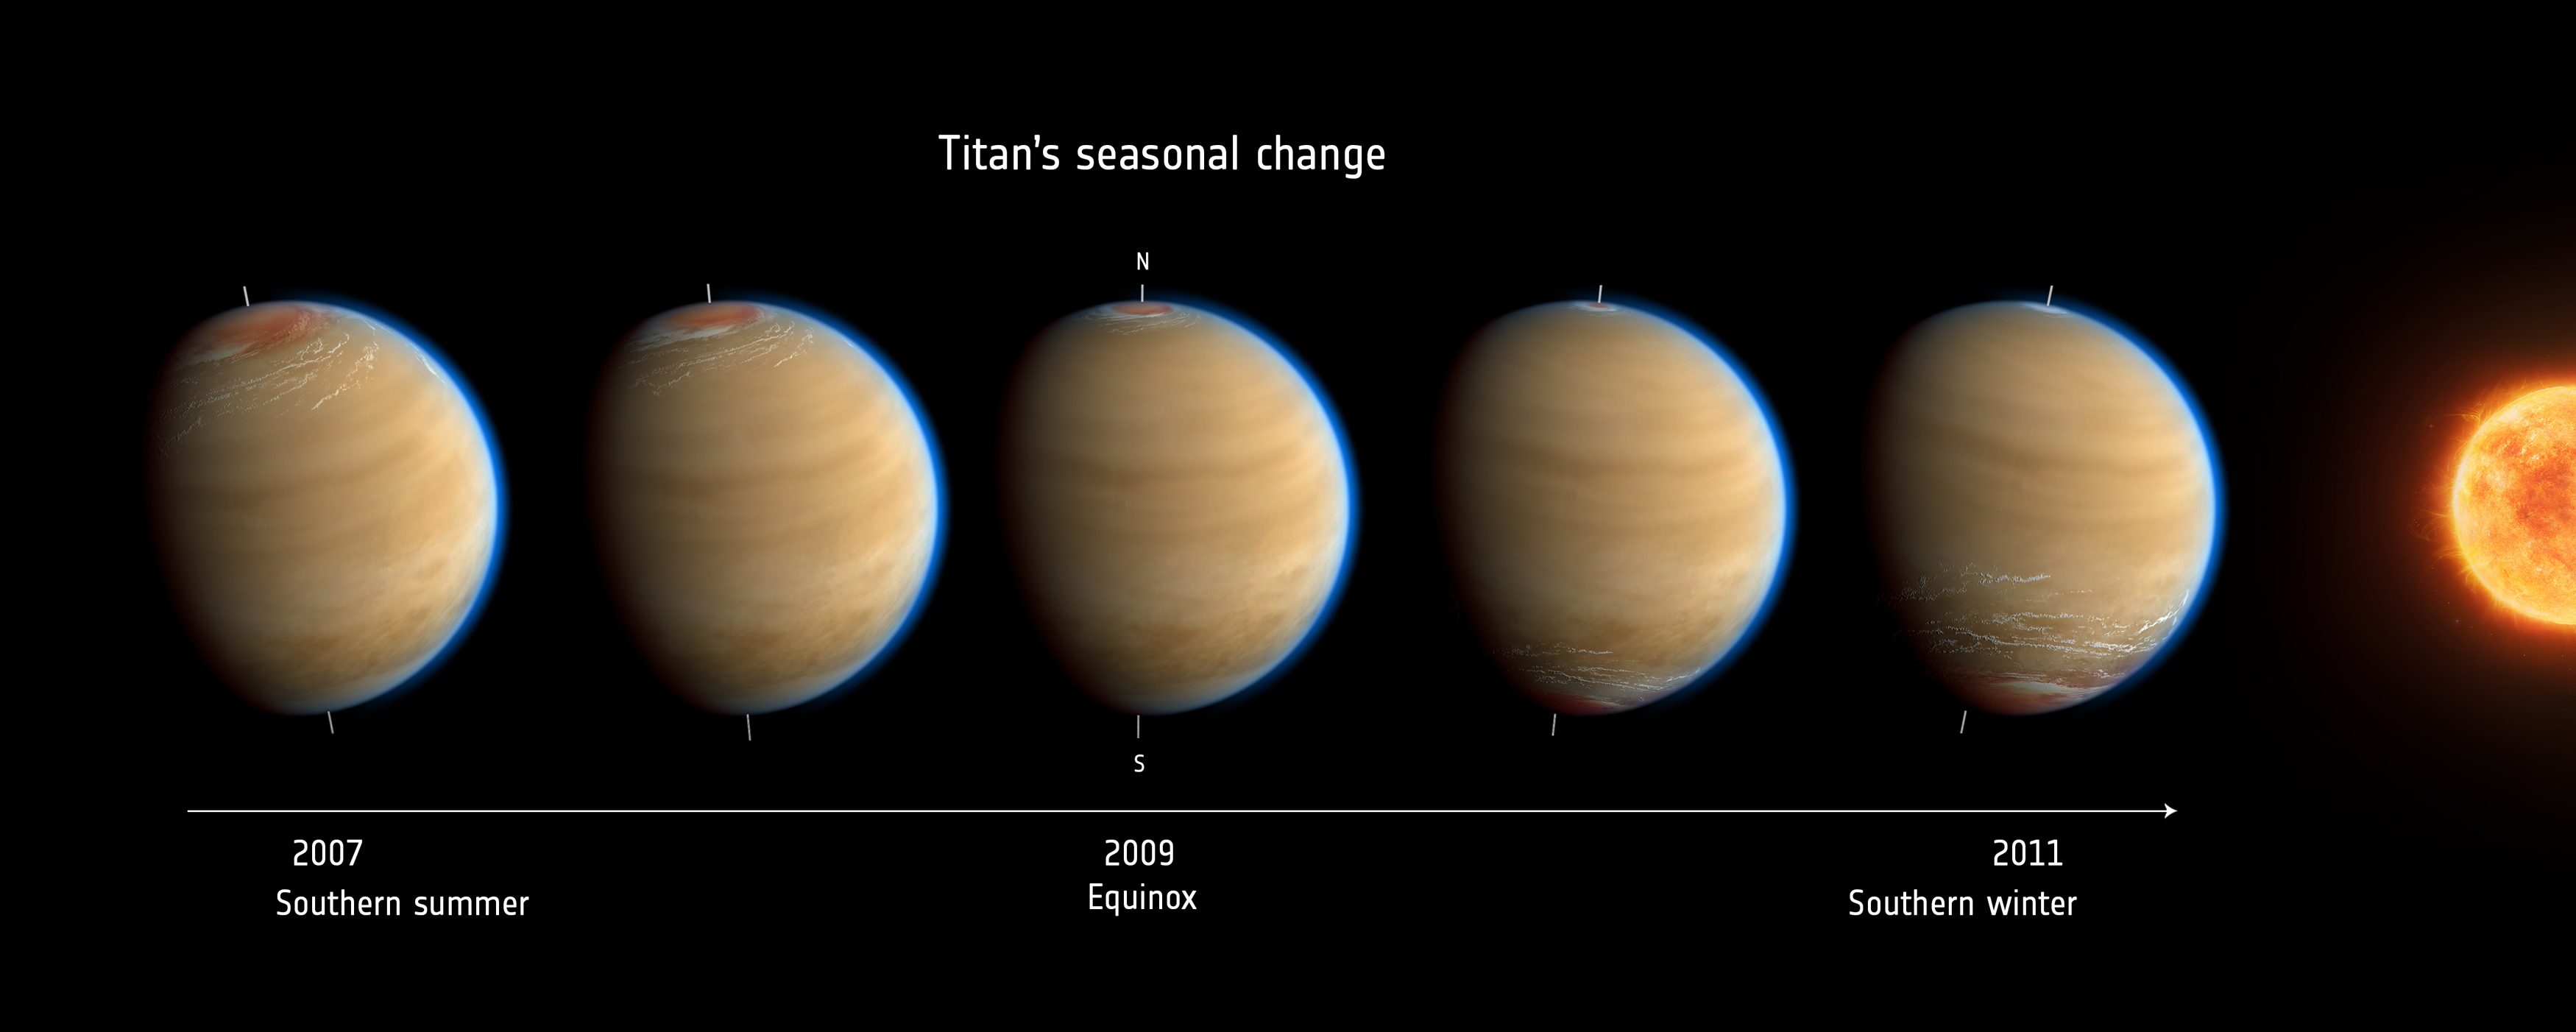 https://i2.wp.com/esamultimedia.esa.int/images/Science/TitansSeasonalChange2_H1.jpg